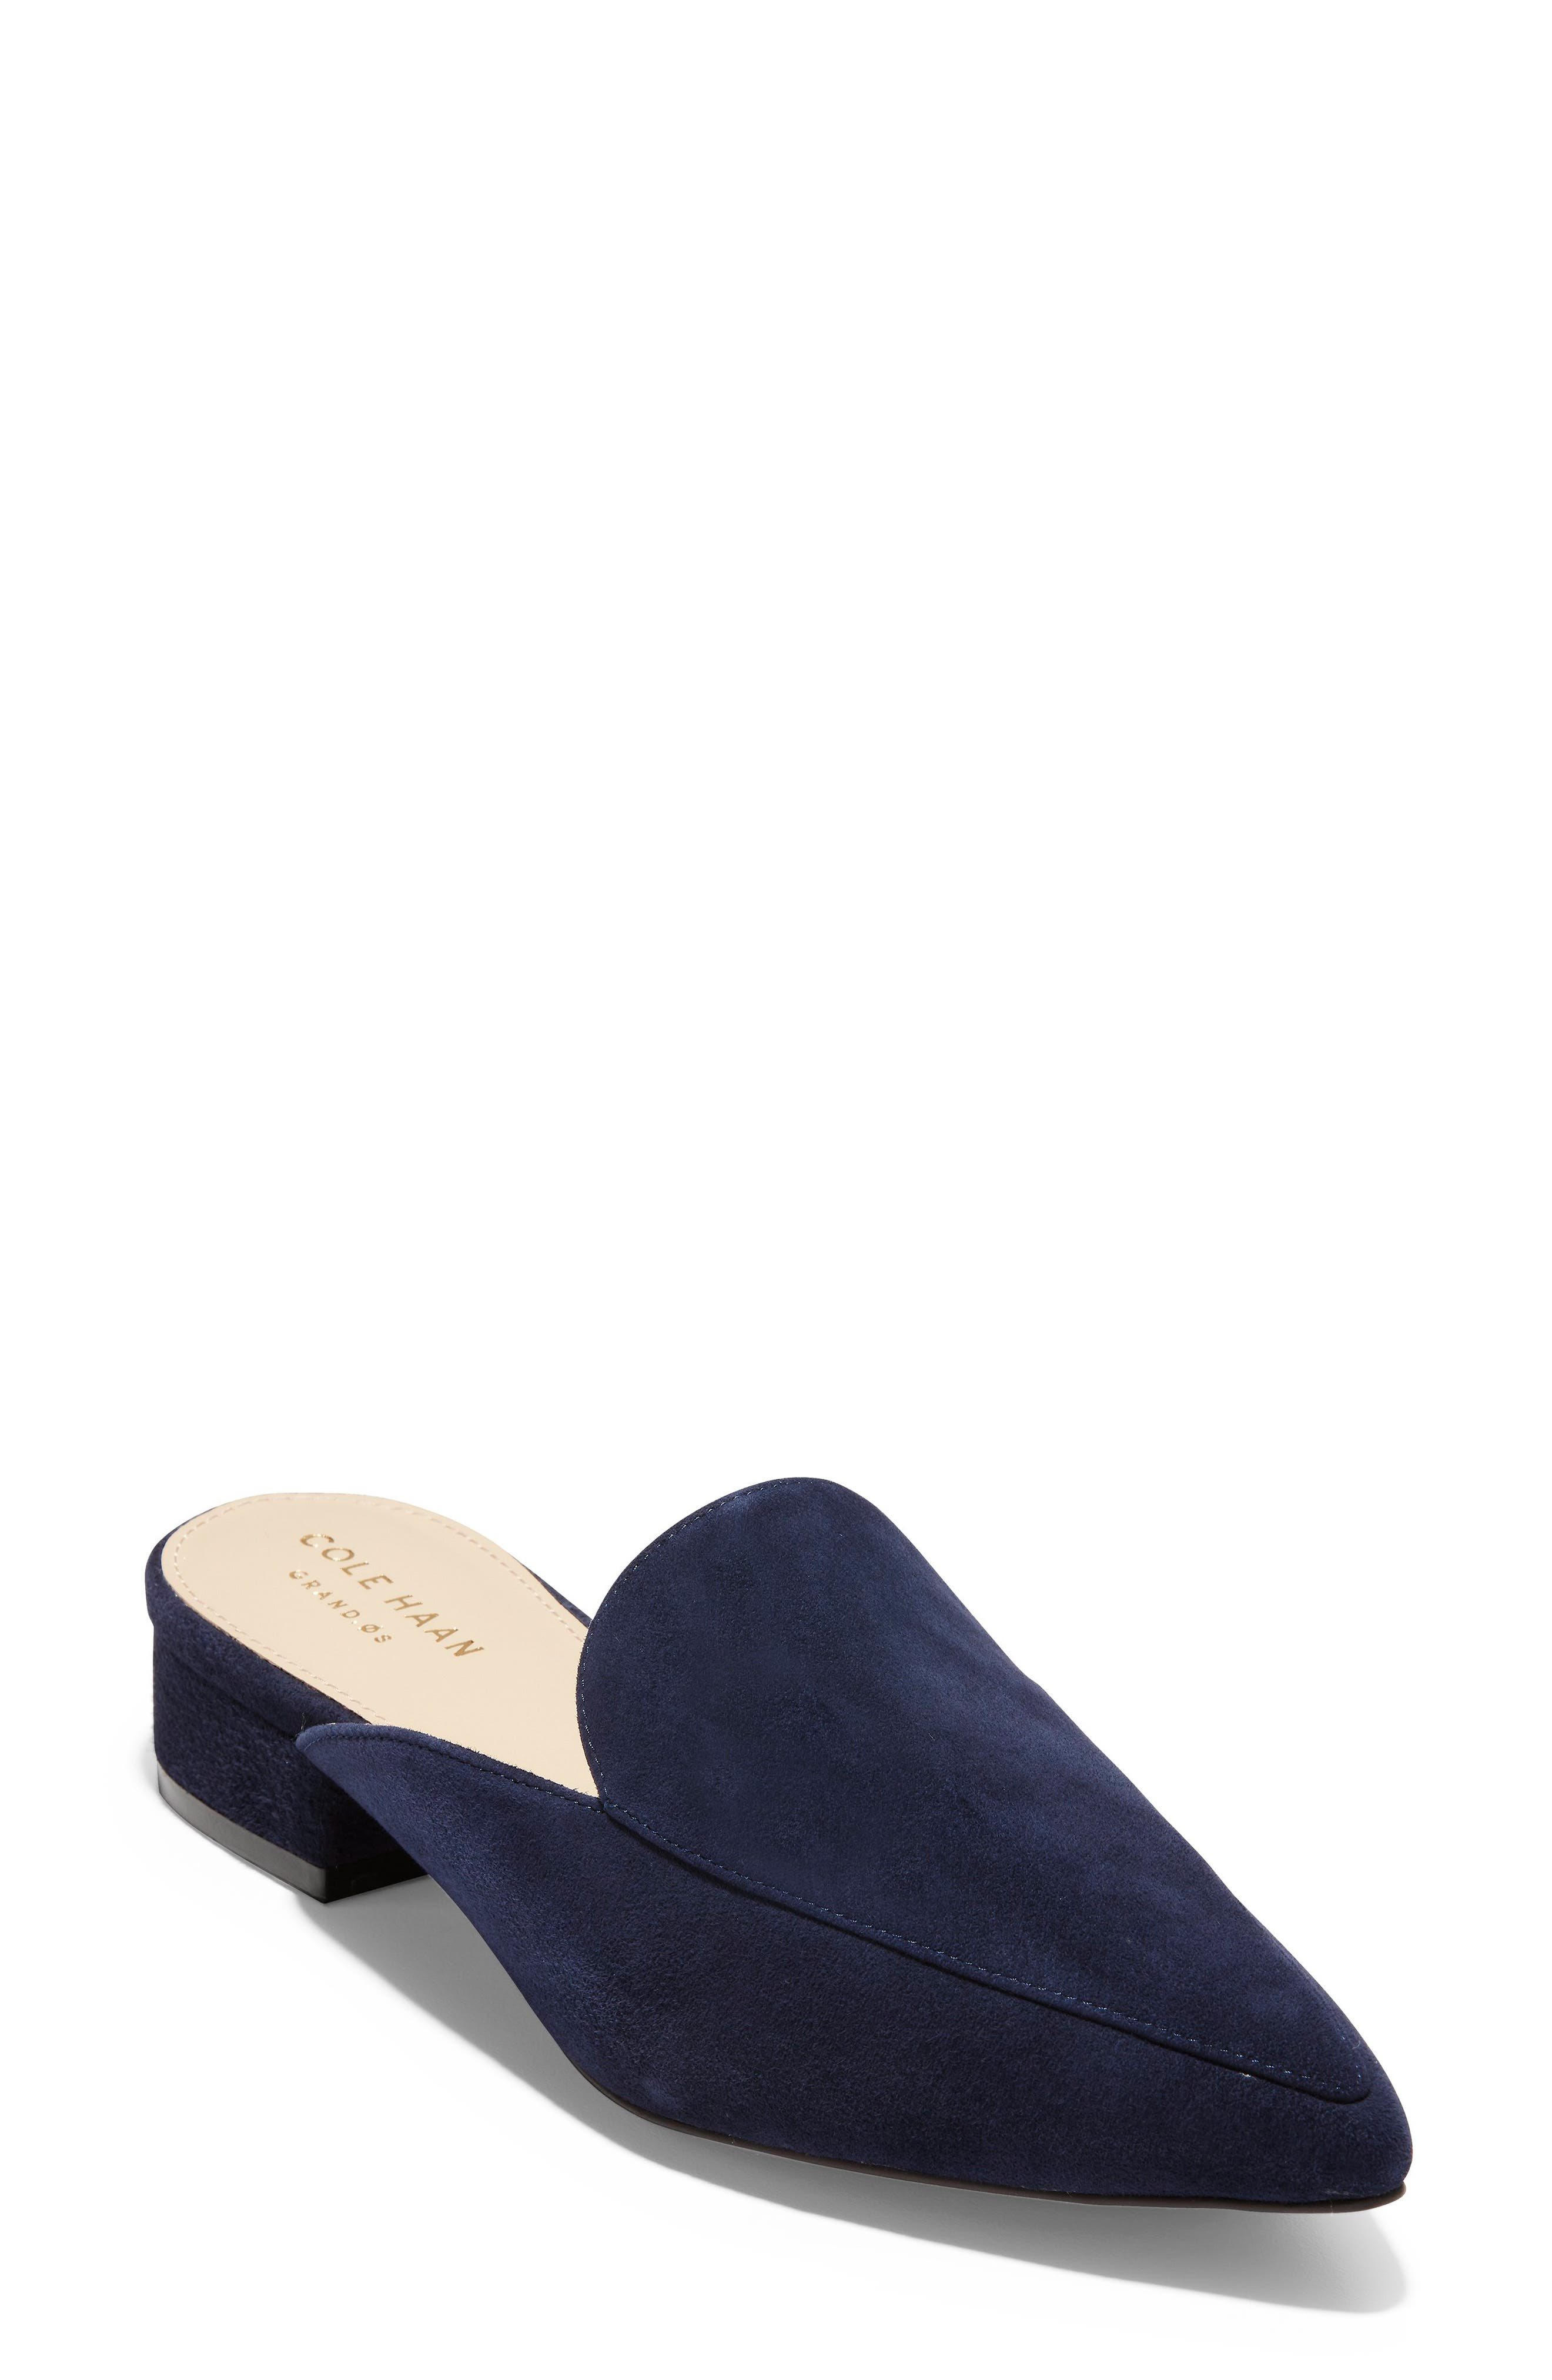 Piper Loafer Mule,                             Main thumbnail 1, color,                             Marine Blue Suede